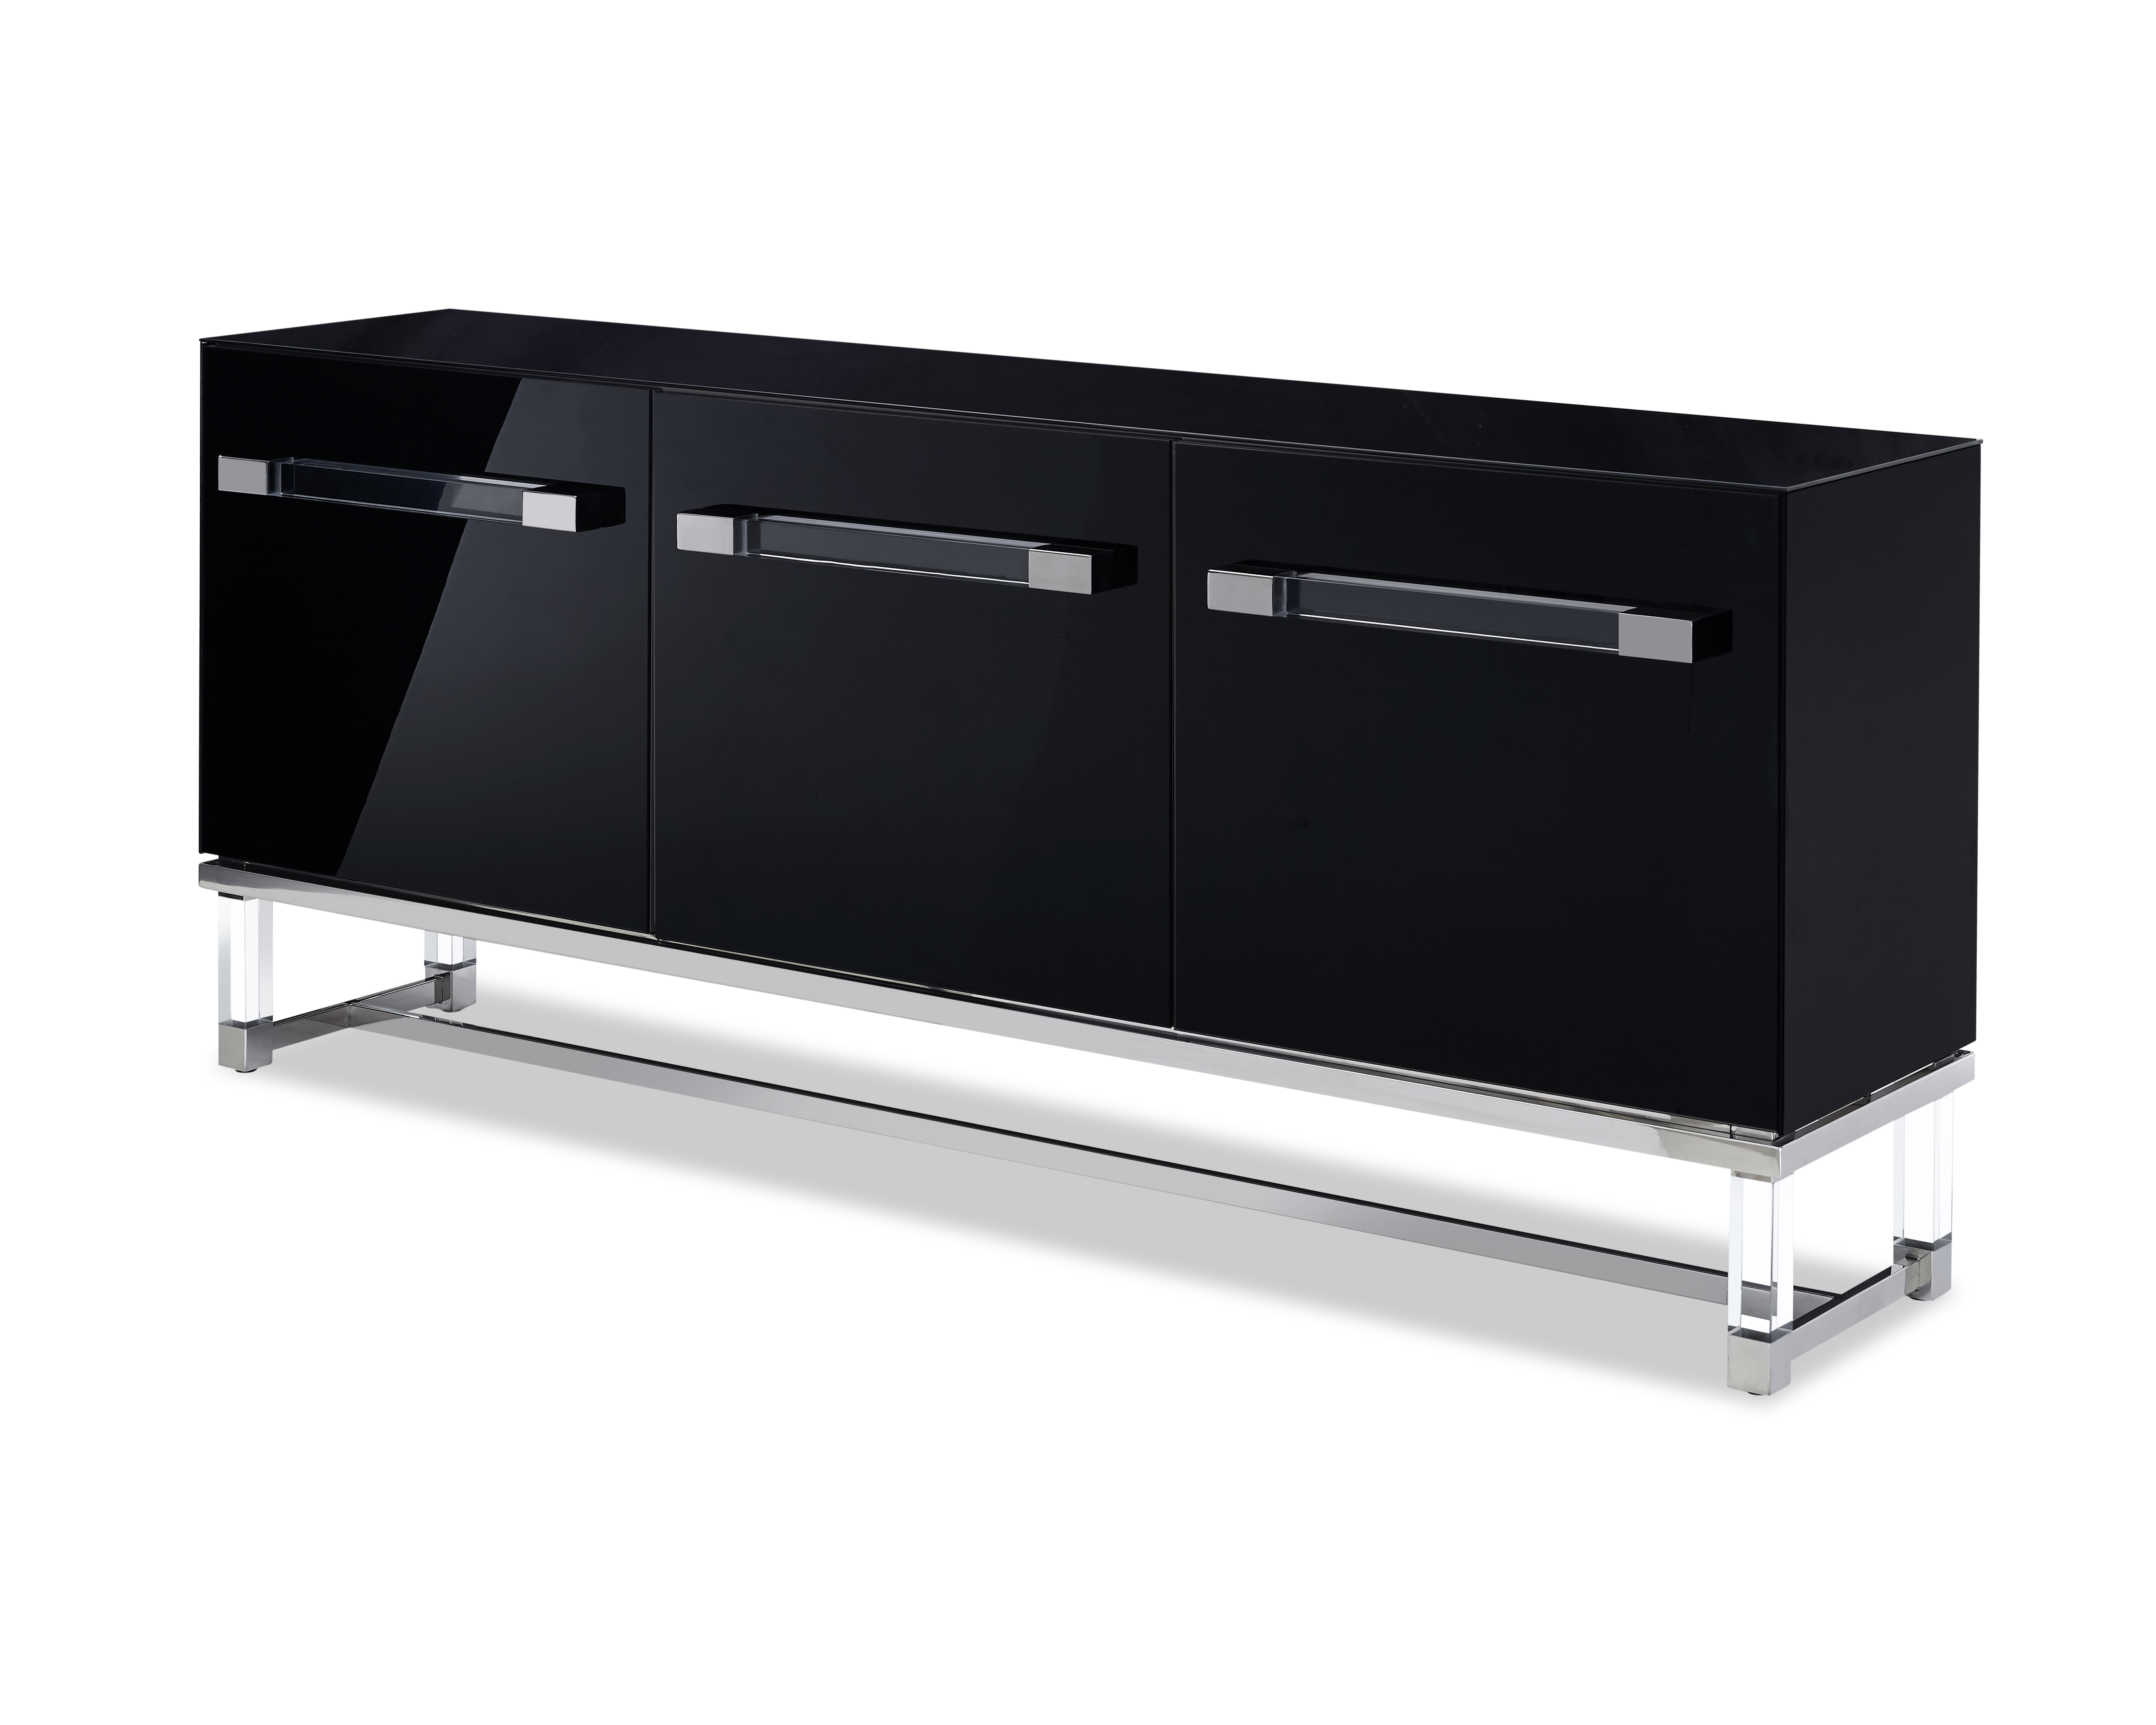 Whiteline Modern Living Black Brianna Contemporary High Gloss Lacquer Buffet For Contemporary Black Buffets (View 30 of 30)